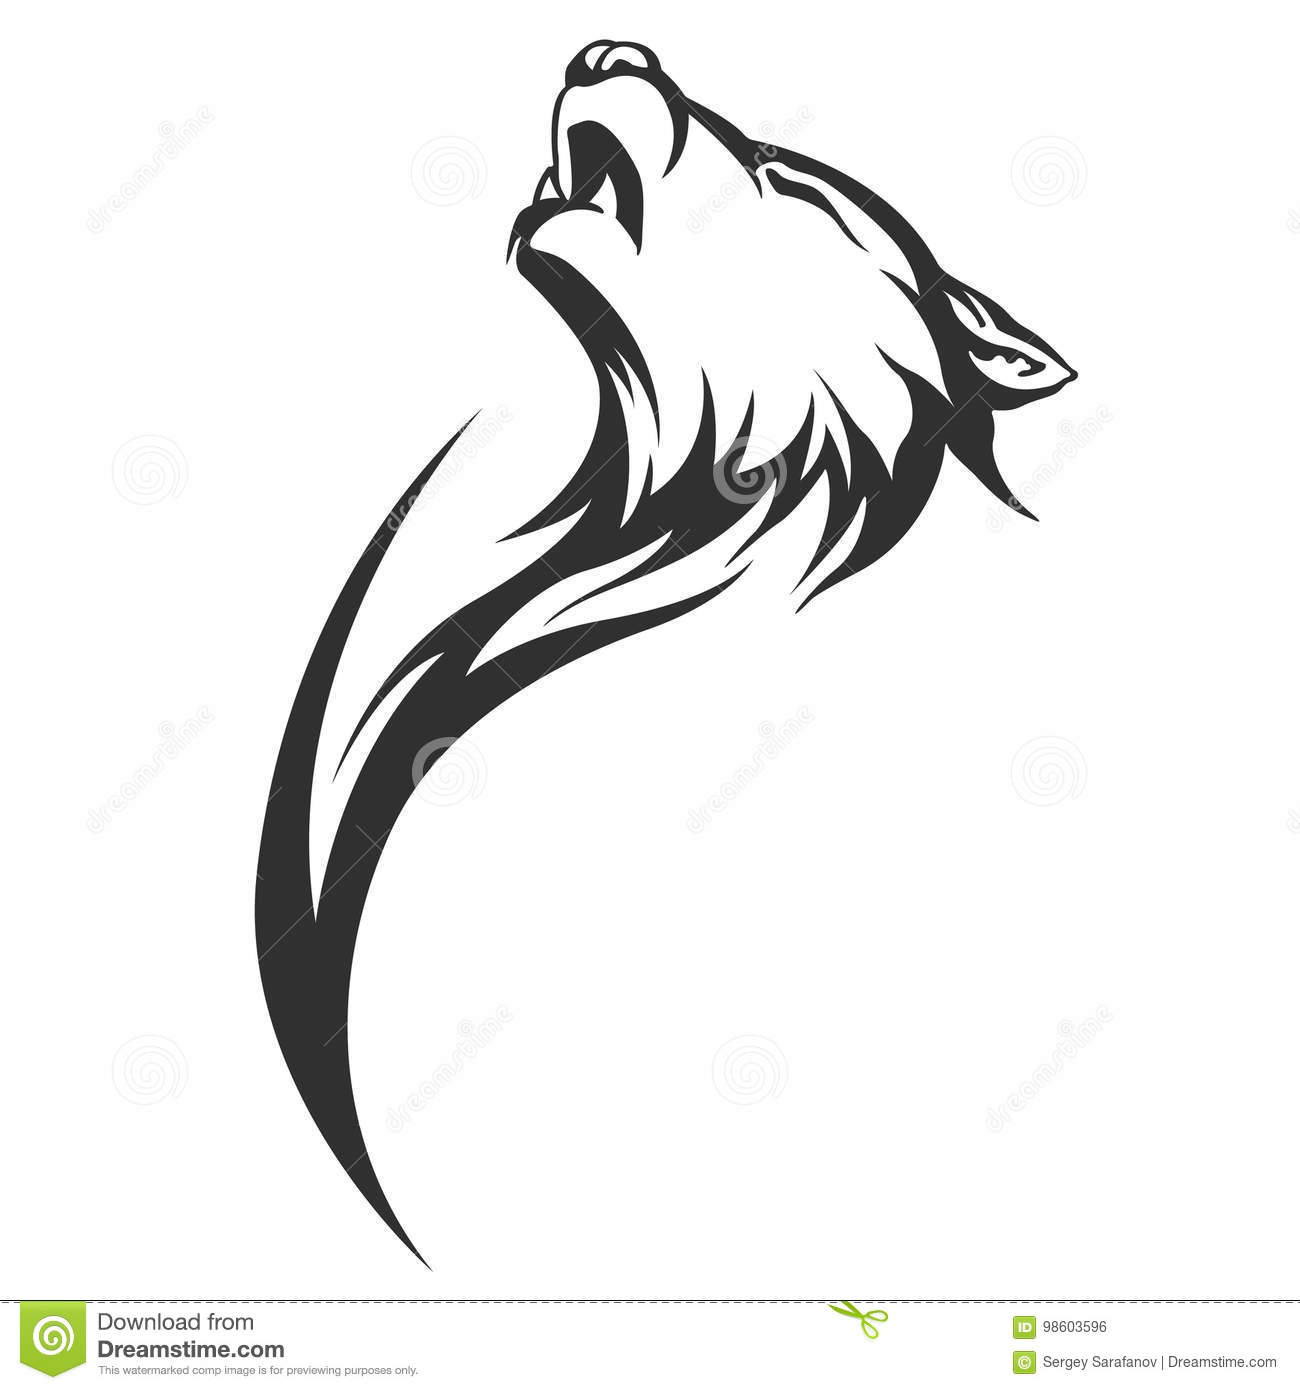 dee0797bb Tribal tattoo wolf designs stock vector. Illustration of mascot ...